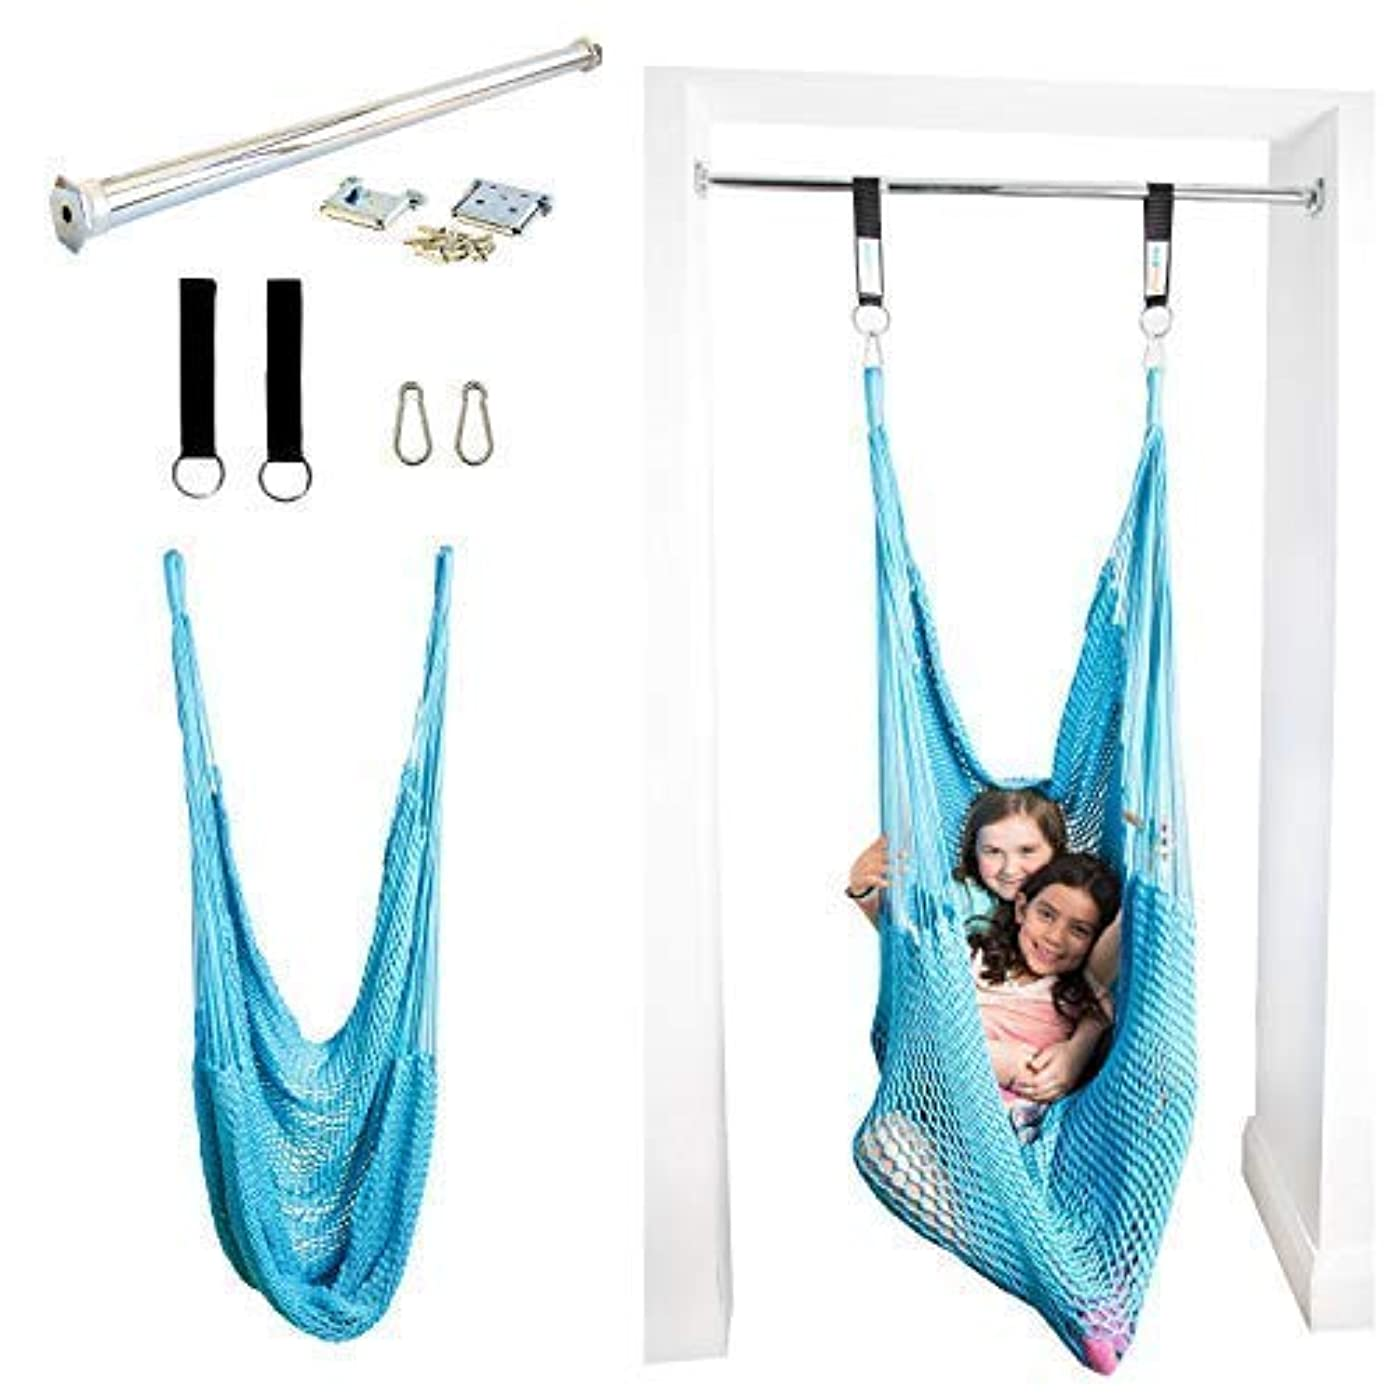 DreamGYM Net Therapy Indoor Swing with Doorway Support Bar | Sensory Swing for Adults and Children | Blue